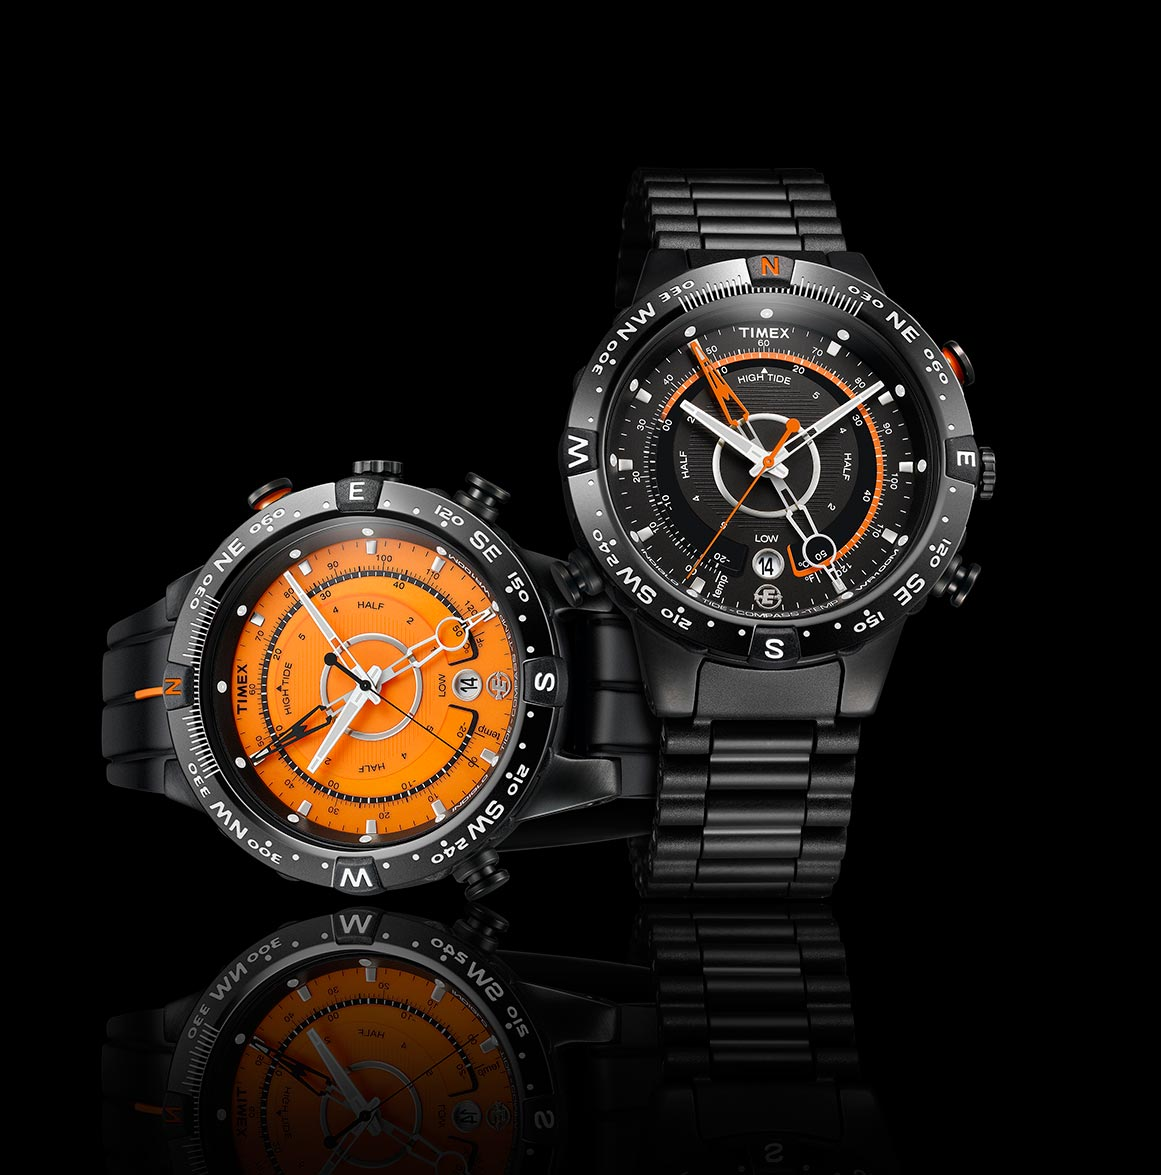 yacht-explore-comp-watches